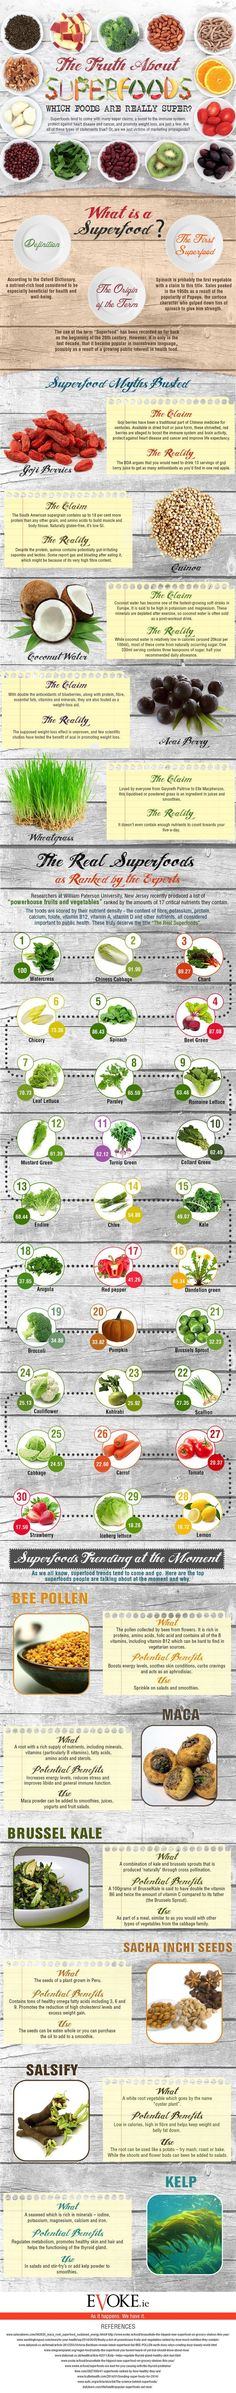 Do you eat superfoods?